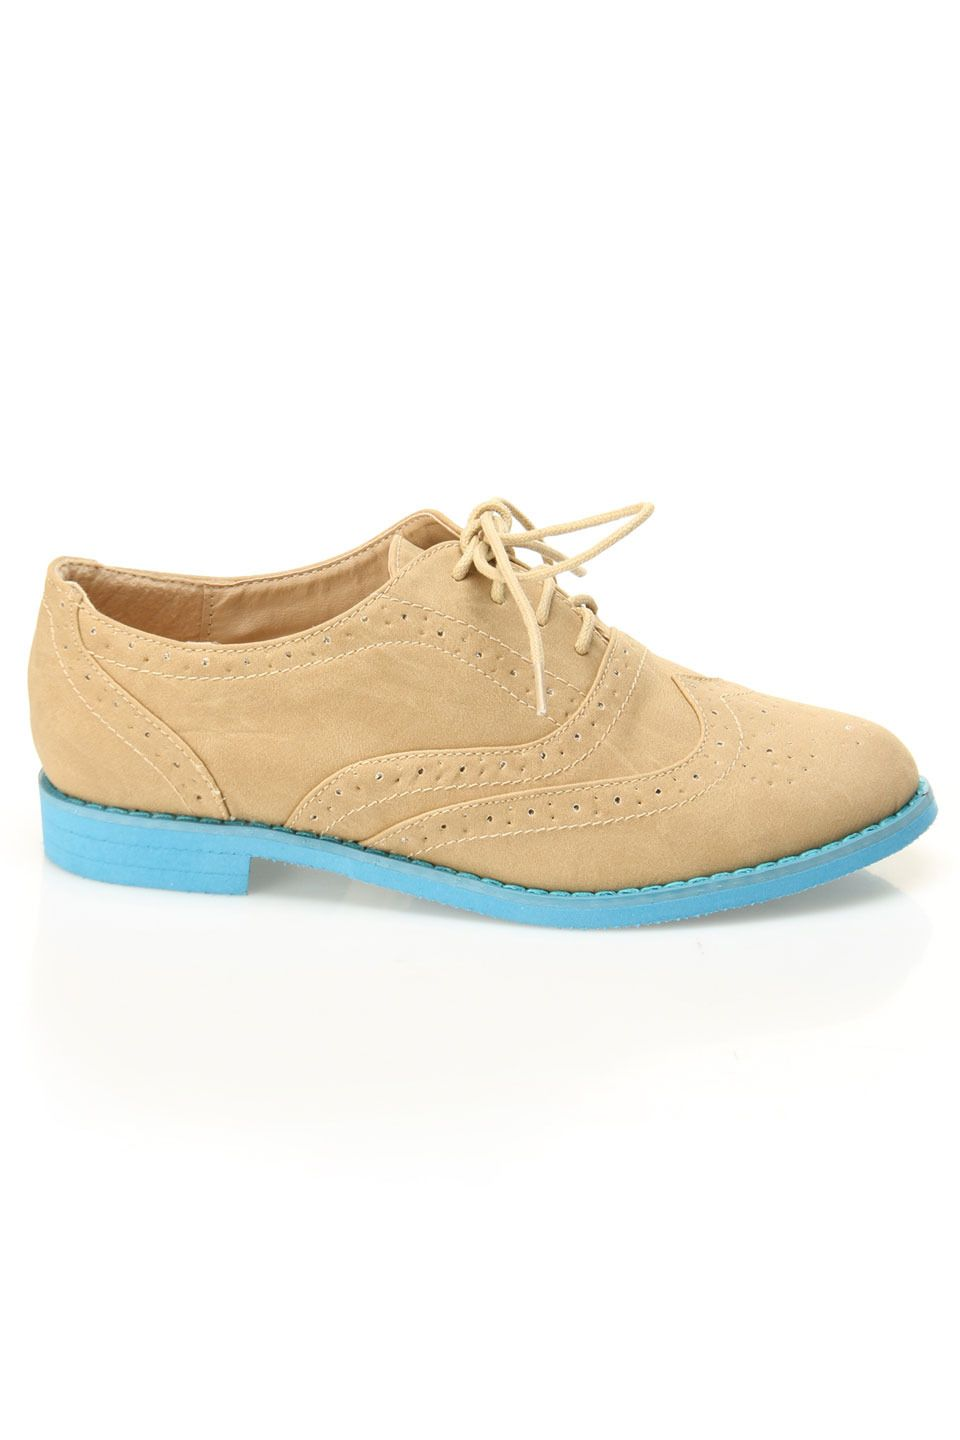 tan + turquoise oxfords